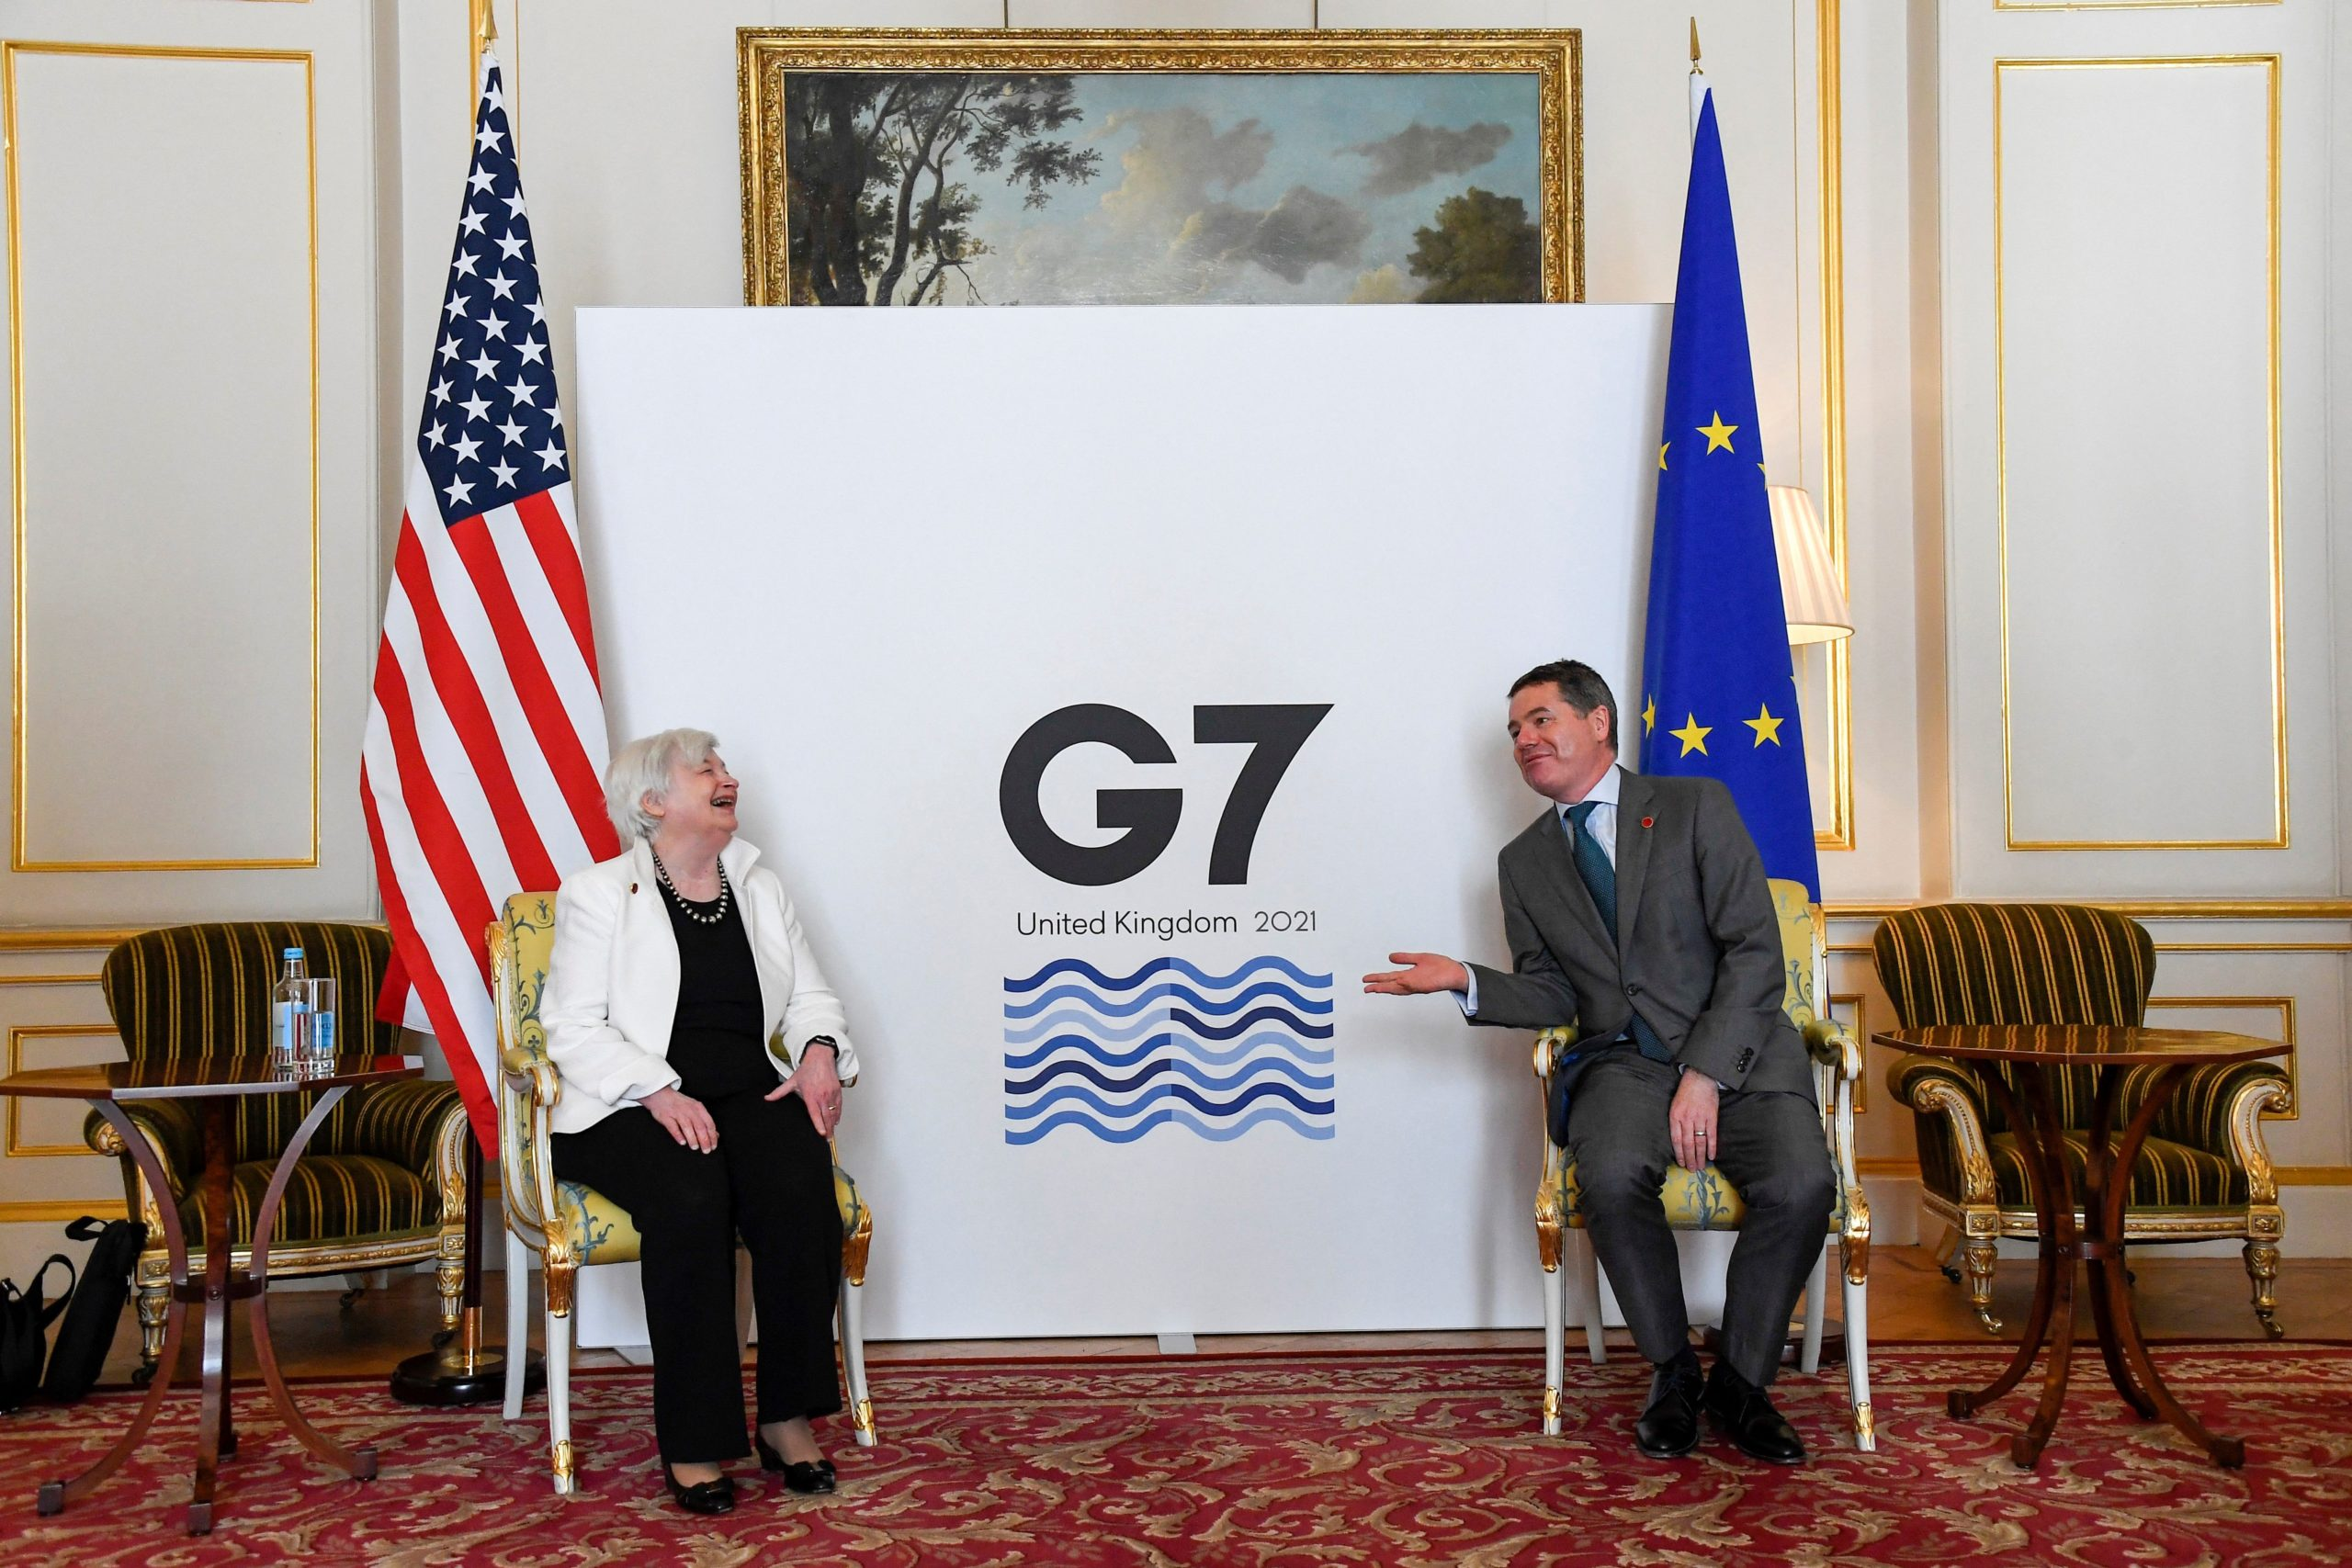 Treasury Secretary Janet Yellen meets with European financial leaders on the second day of the G7 Finance Ministers Meeting in London, U.K. on Saturday. (Alberto Pezzali/Pool/AFP via Getty Images)